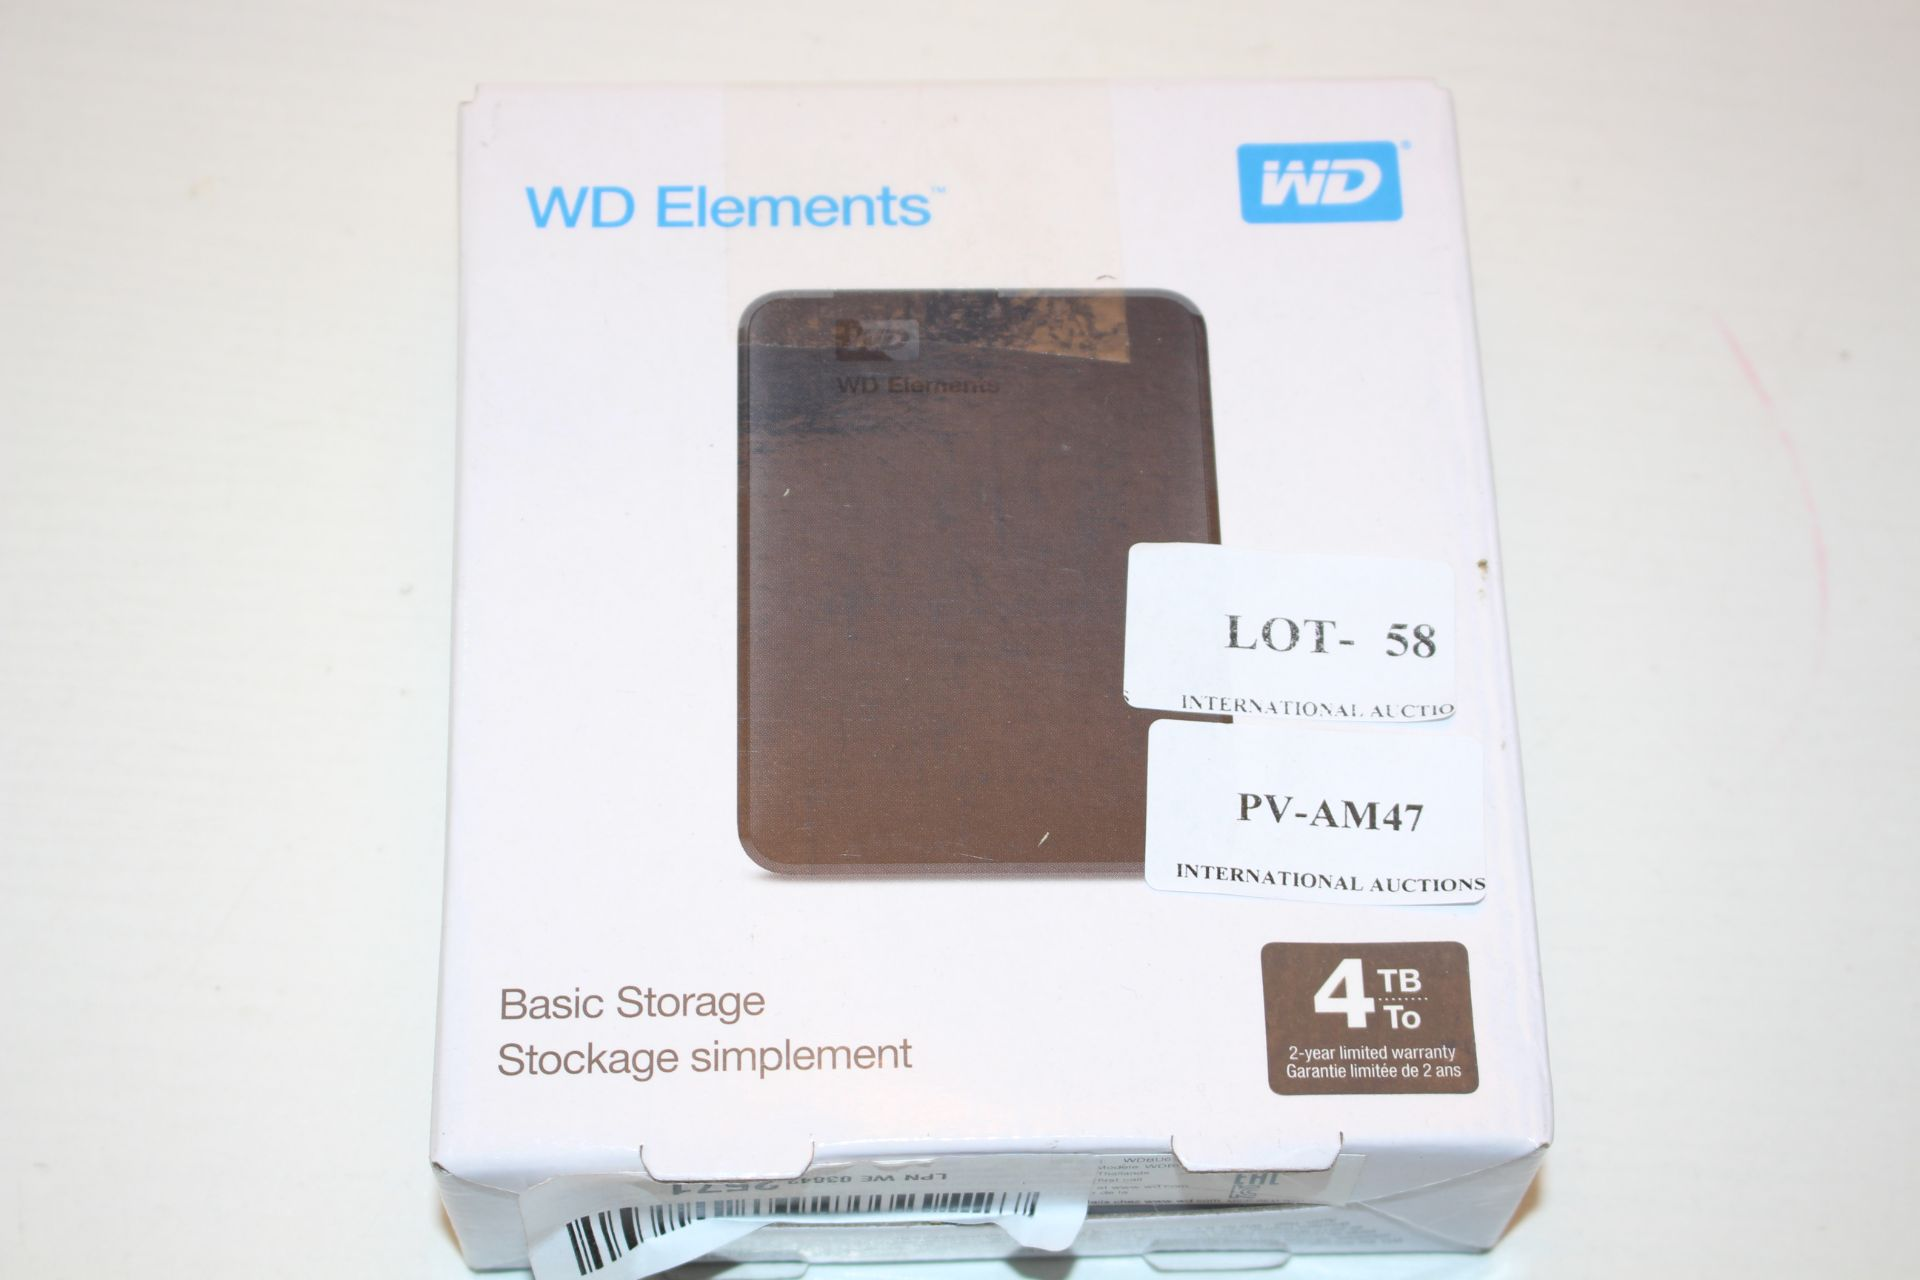 BOXED WD ELEMENTS BASIC STORAGE 4TB RRP £50.00Condition ReportAppraisal Available on Request- All